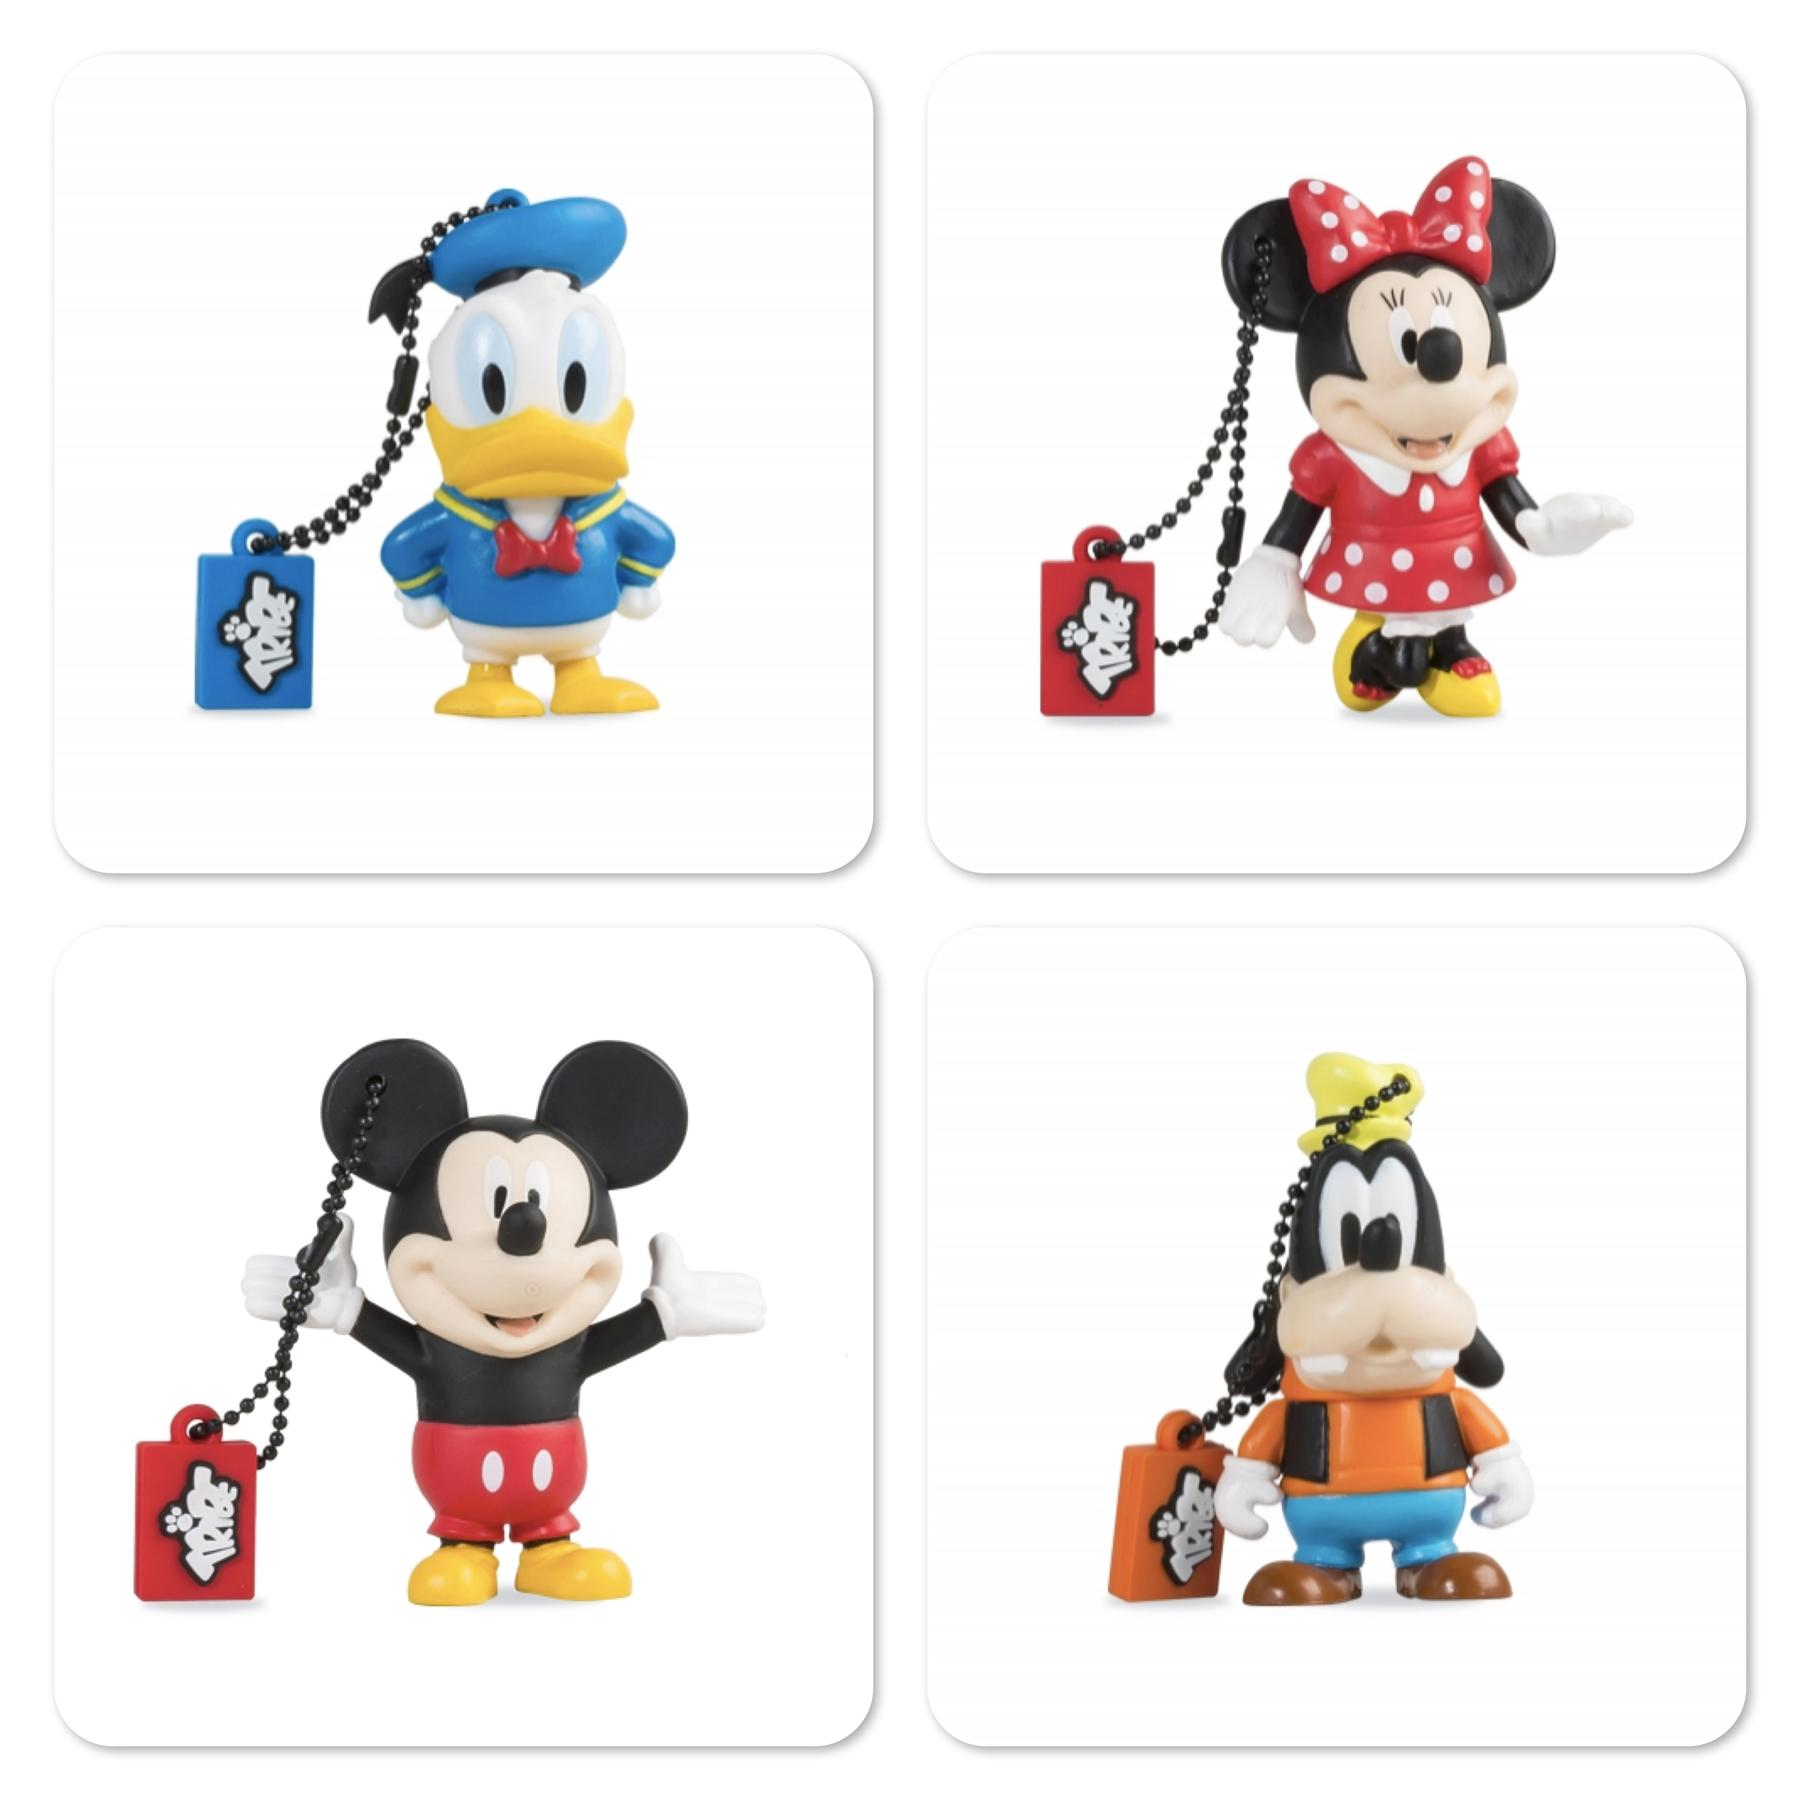 Bdotcom = Tribe Disney Collection USB Pendrive Thumb Drive